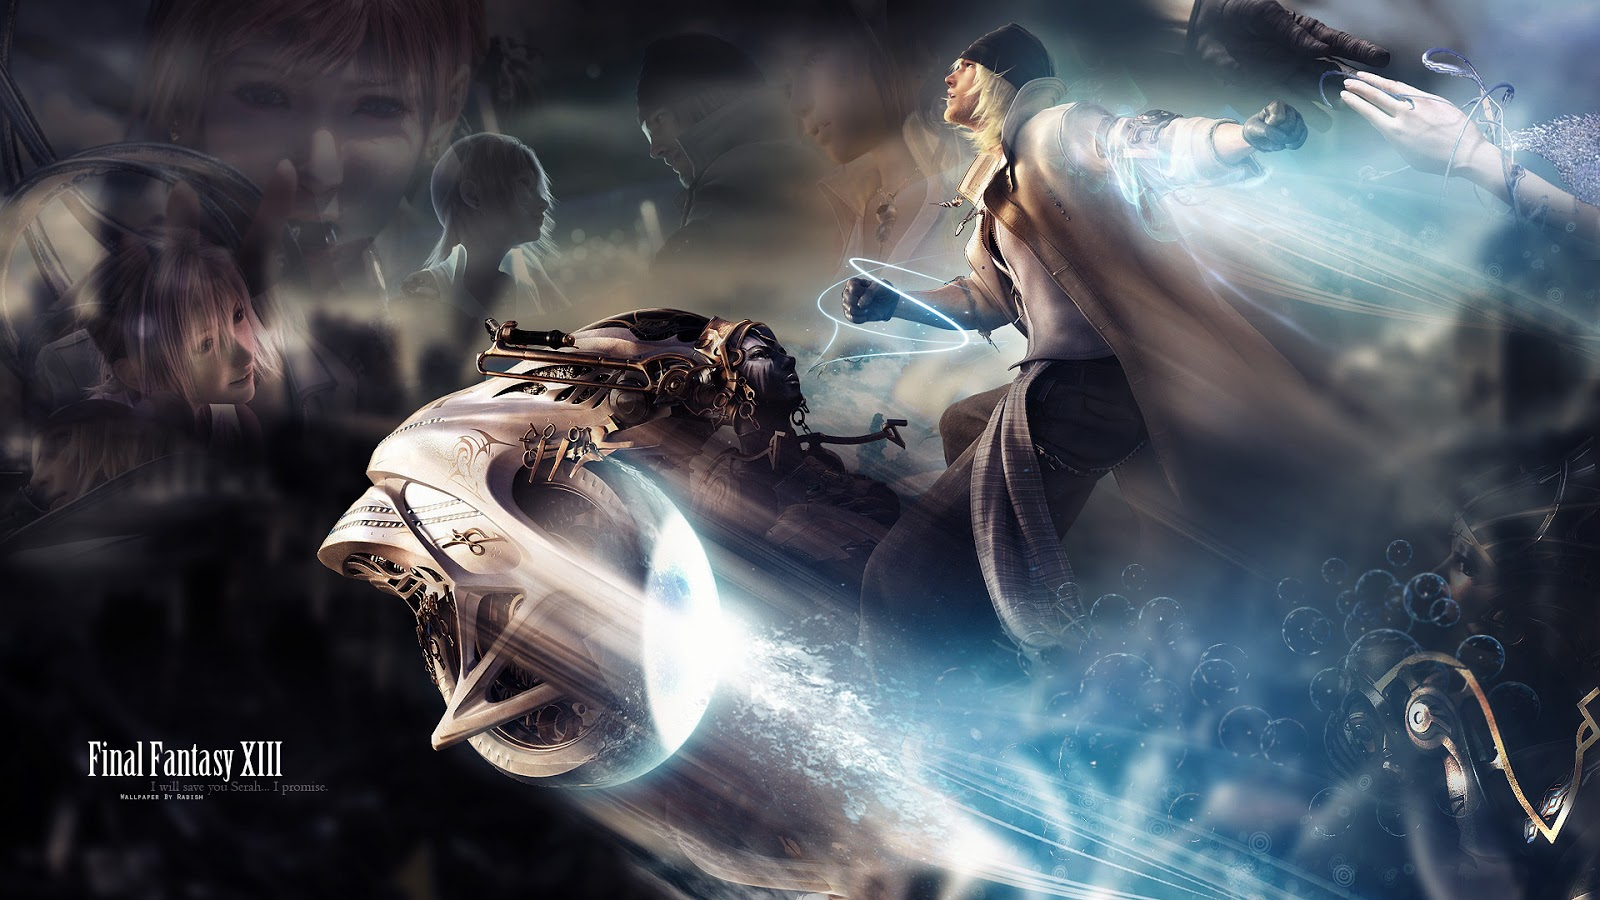 Final Fantasy X 2 Wallpaper Widescreen Download Wallpaper 1600x900